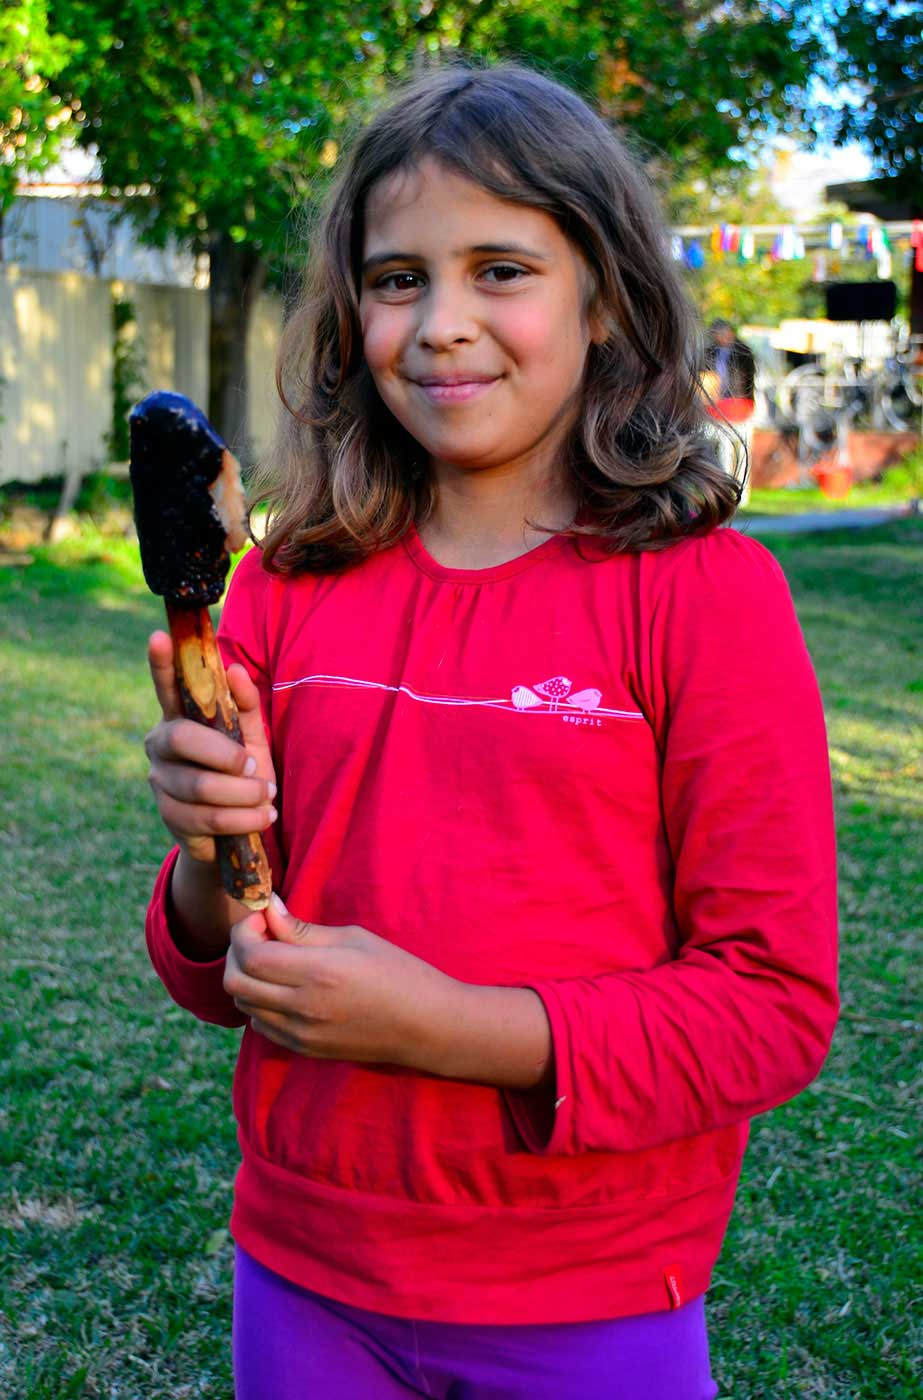 Young girl in a red shirt holding a kodj (axe) - click to view larger image